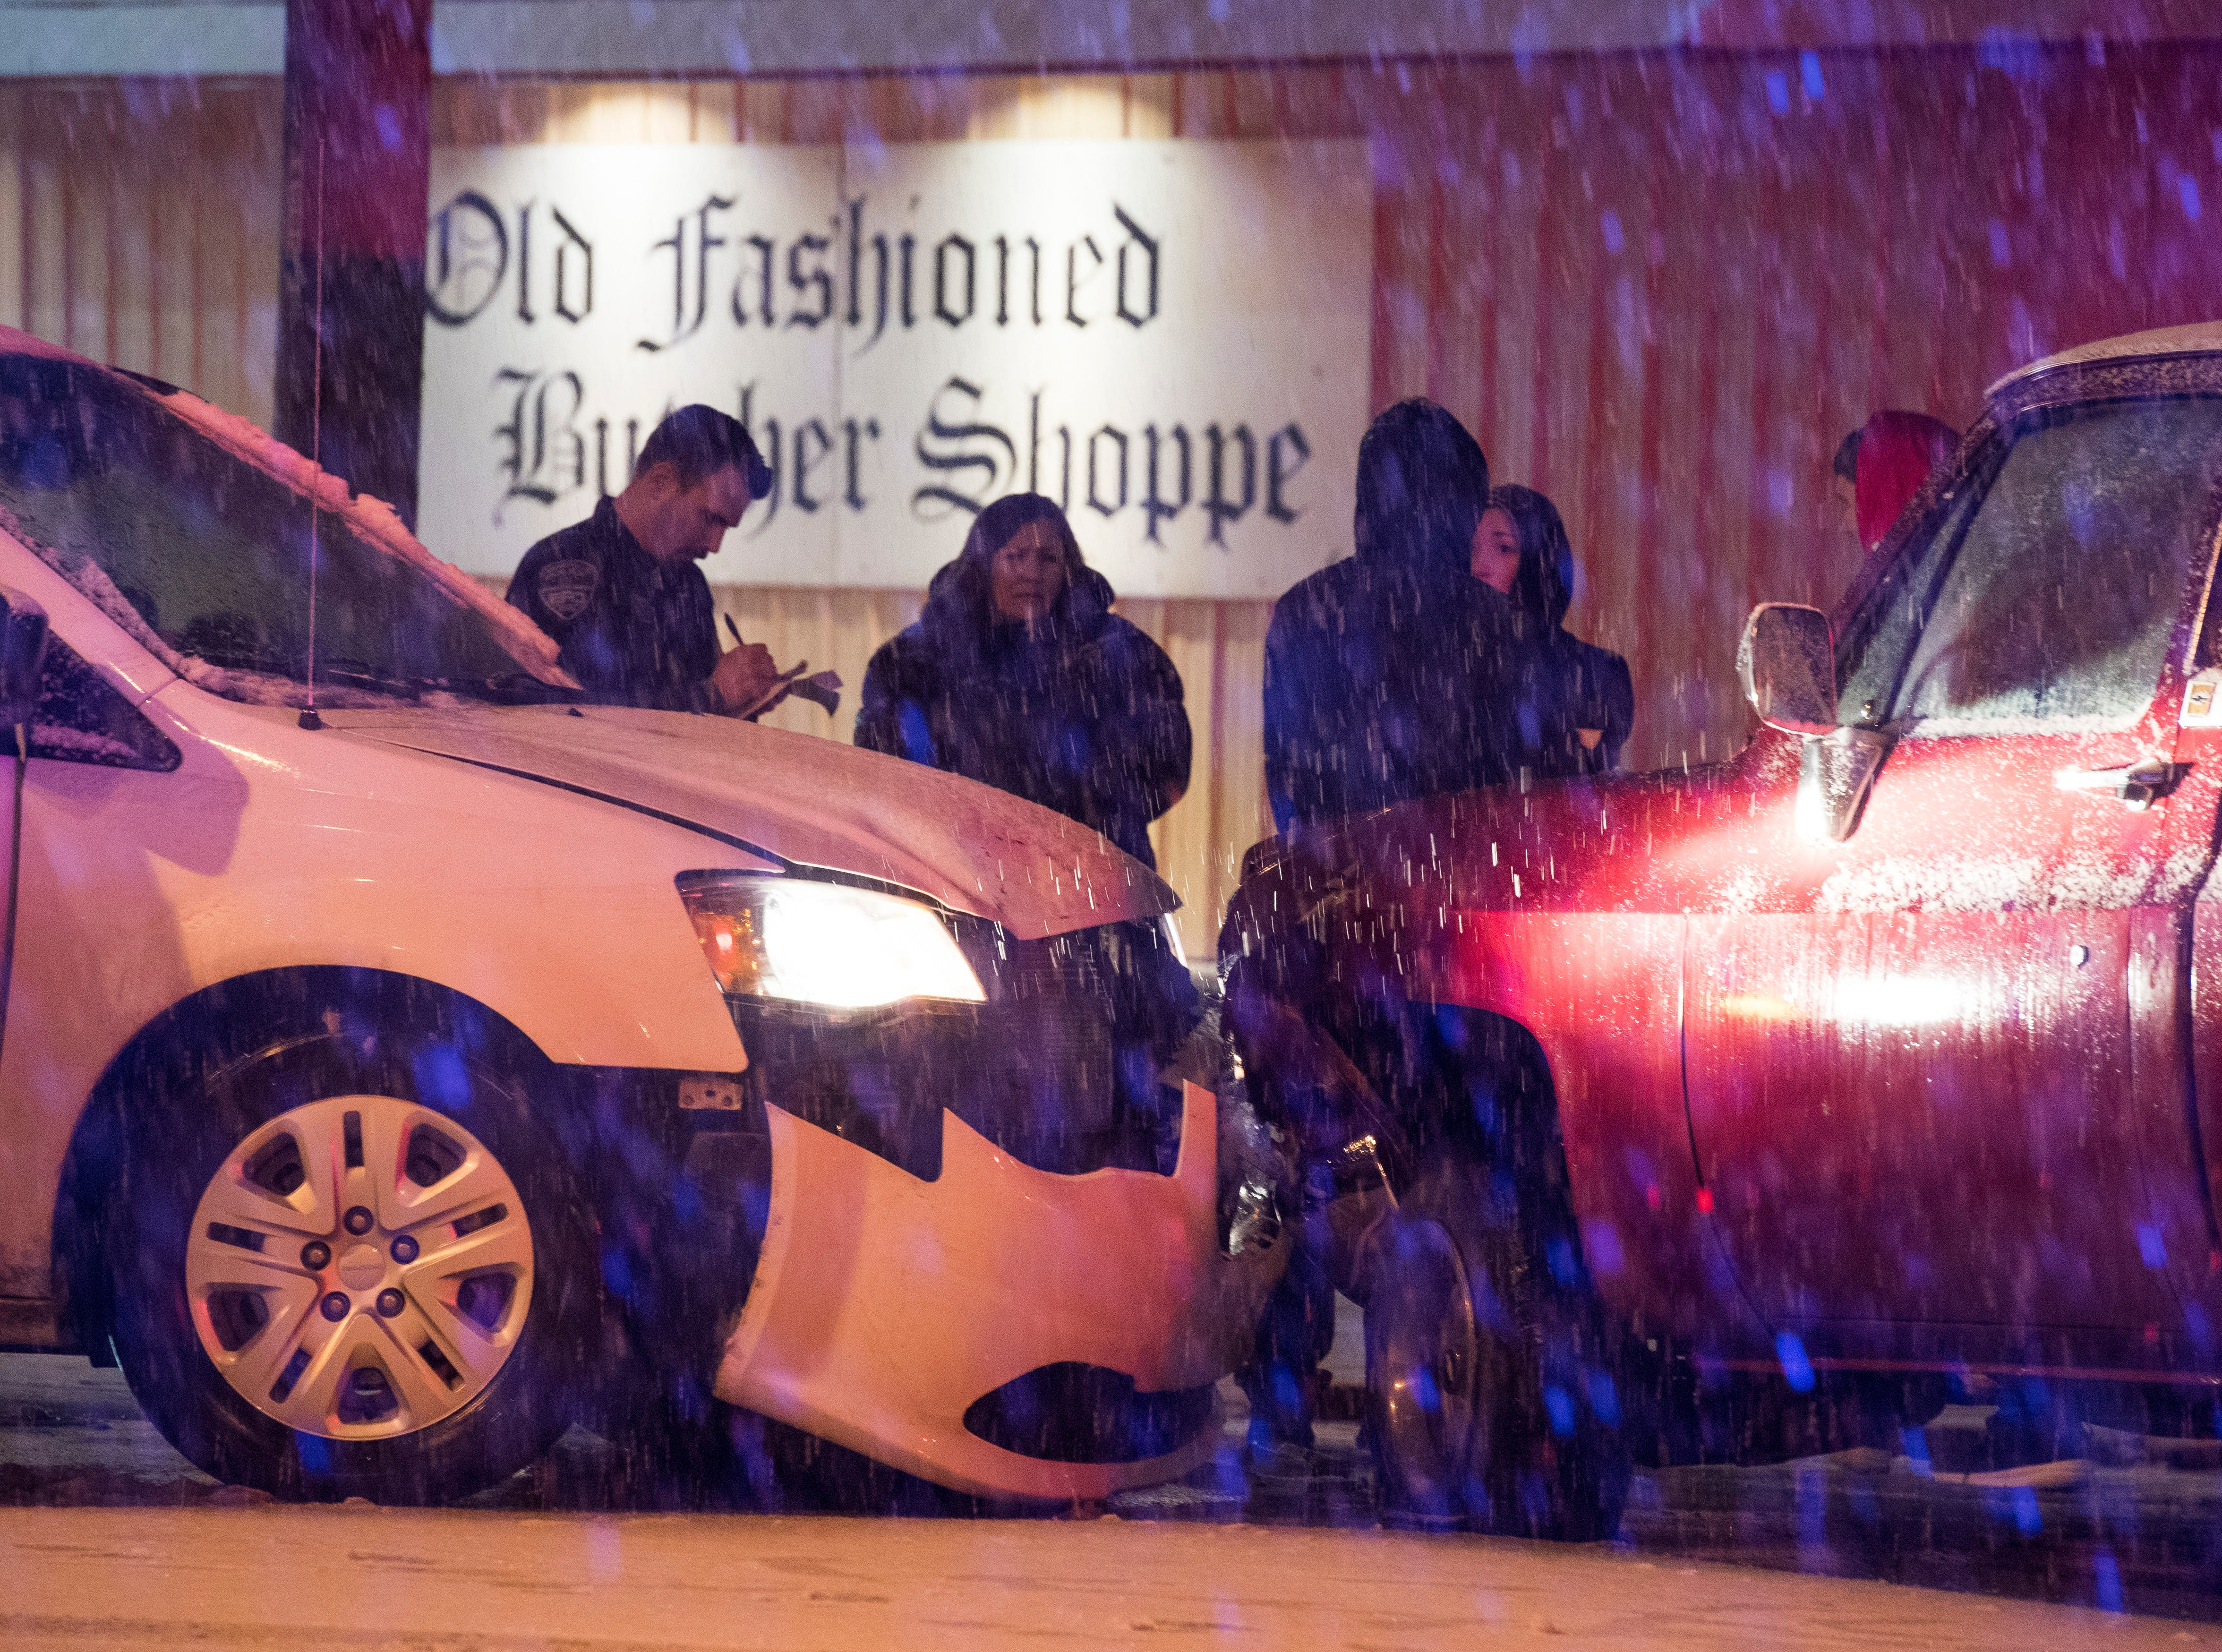 A two vehicle accident at the intersection of Wedeking Drive and Stringtown Road in front of Old Fashioned Butcher Shoppe as snow begins to accumulate on the road Friday evening Jan. 11, 2019.